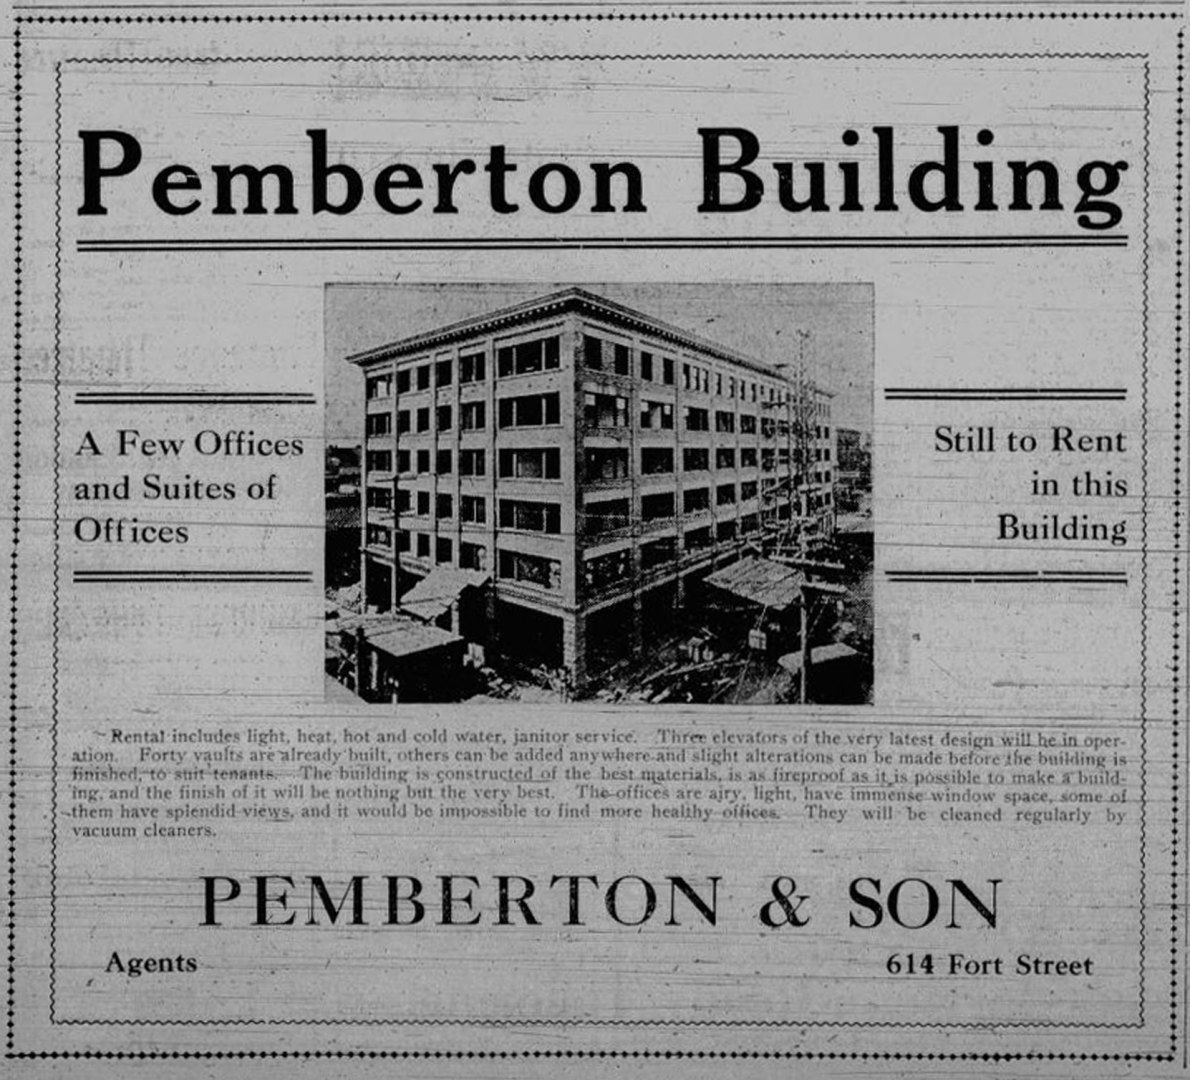 1910 advertisement showing the Pemberton Building (now the Yarrow Building) under construction. This view is looking northwest from the corner of Broad Street and Broughton Street (Victoria Online Sightseeing Tours collection)